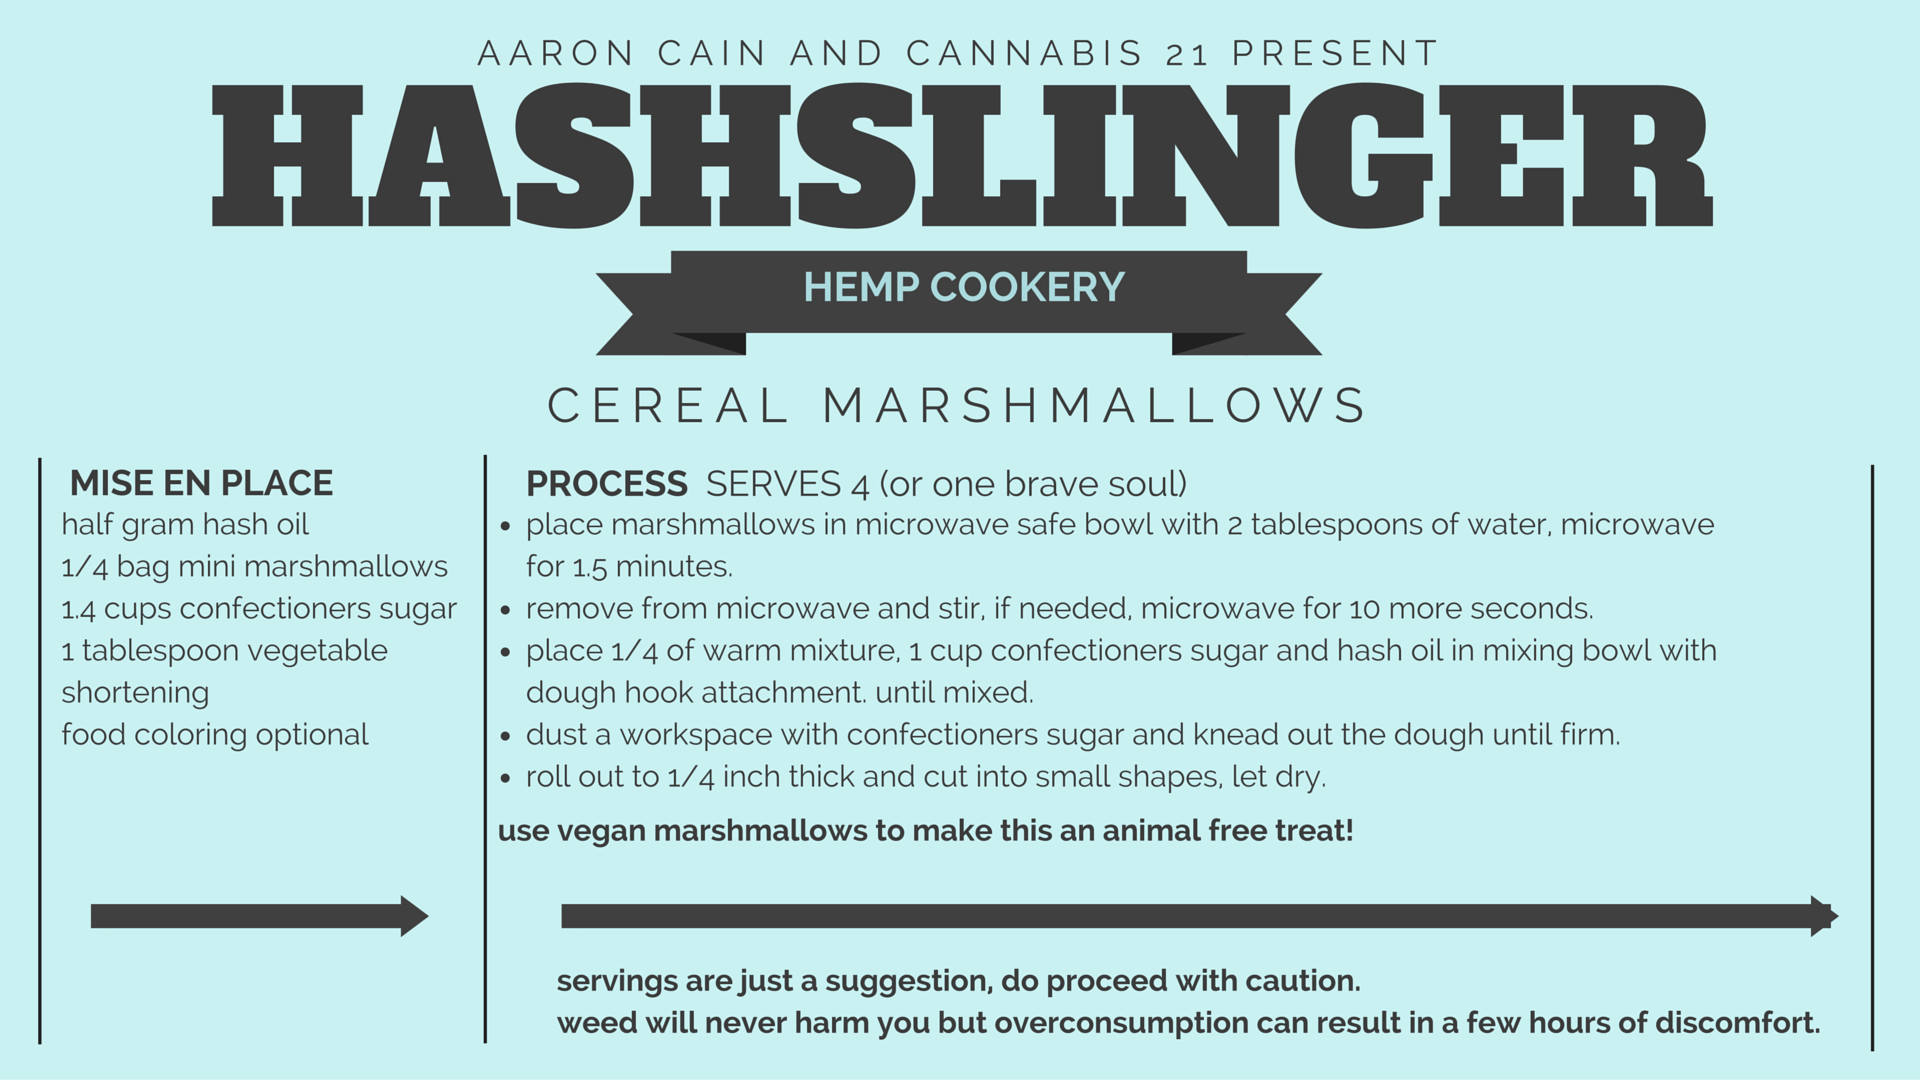 Add these marshmallows to your favorite cereal for a bad ass infused cereal!